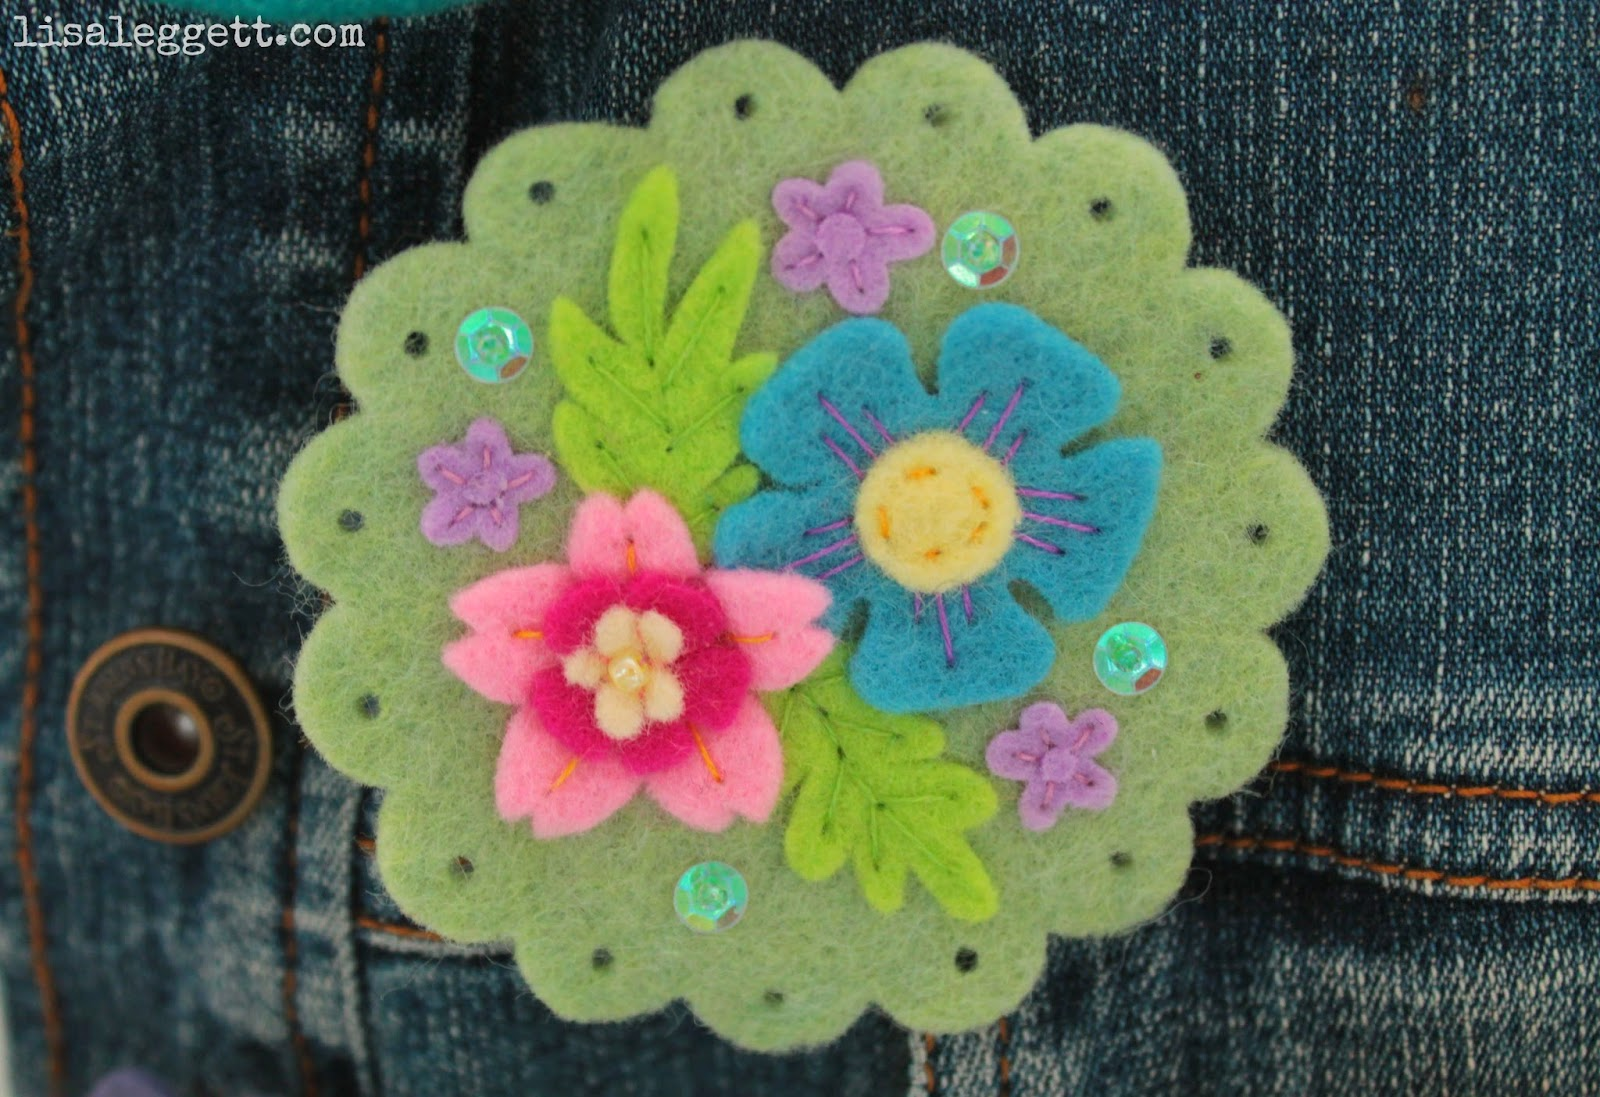 Green Spring Felt Broach by Lisa Leggett